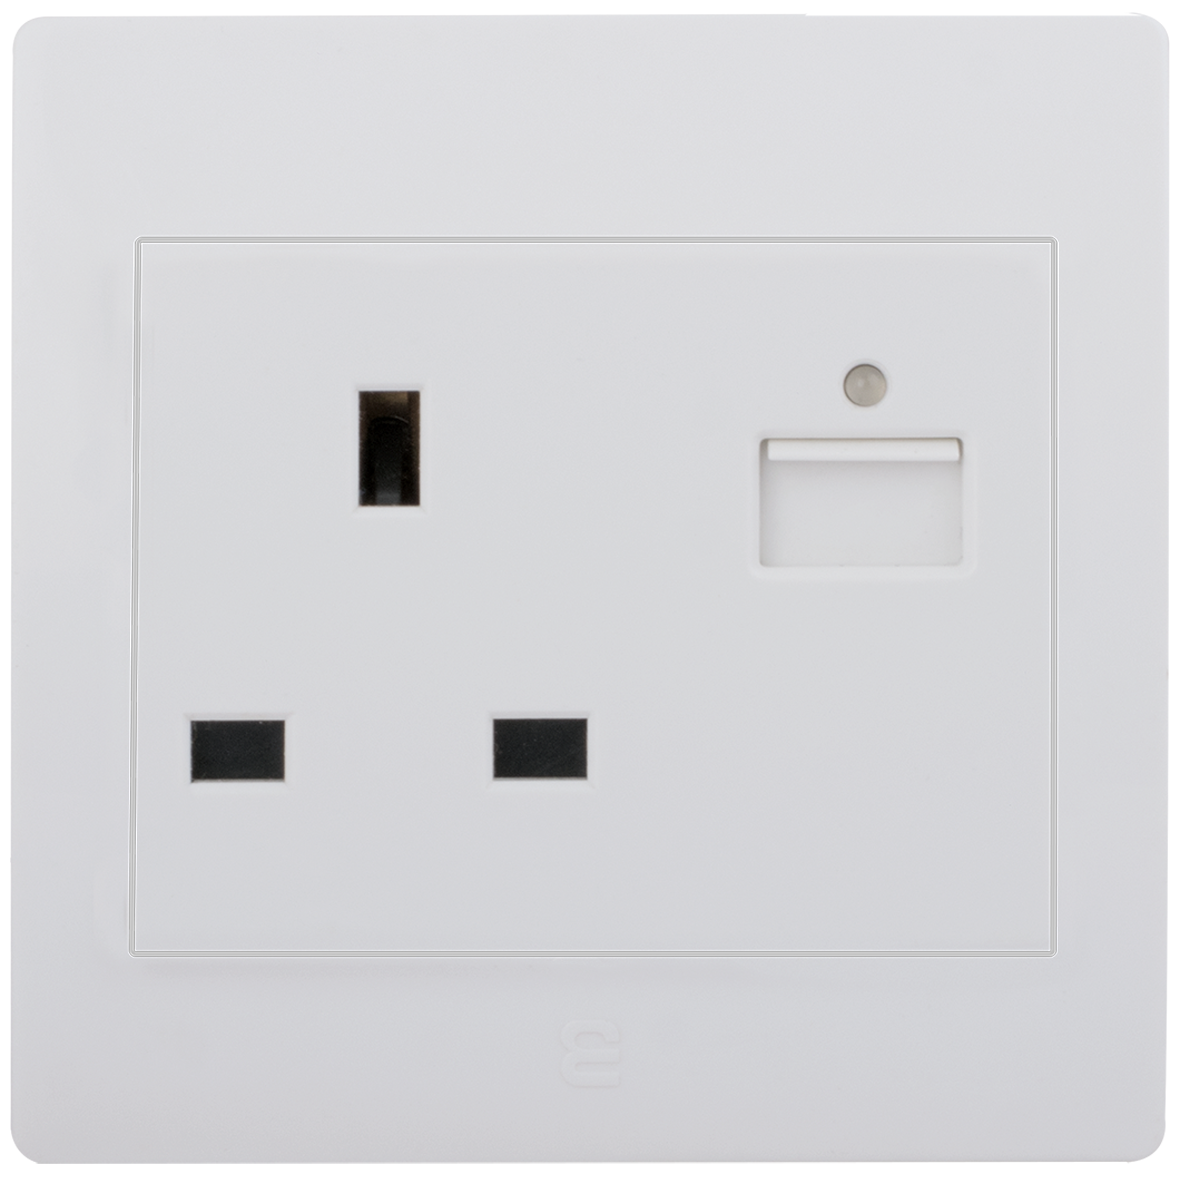 Socket british type with USB charger